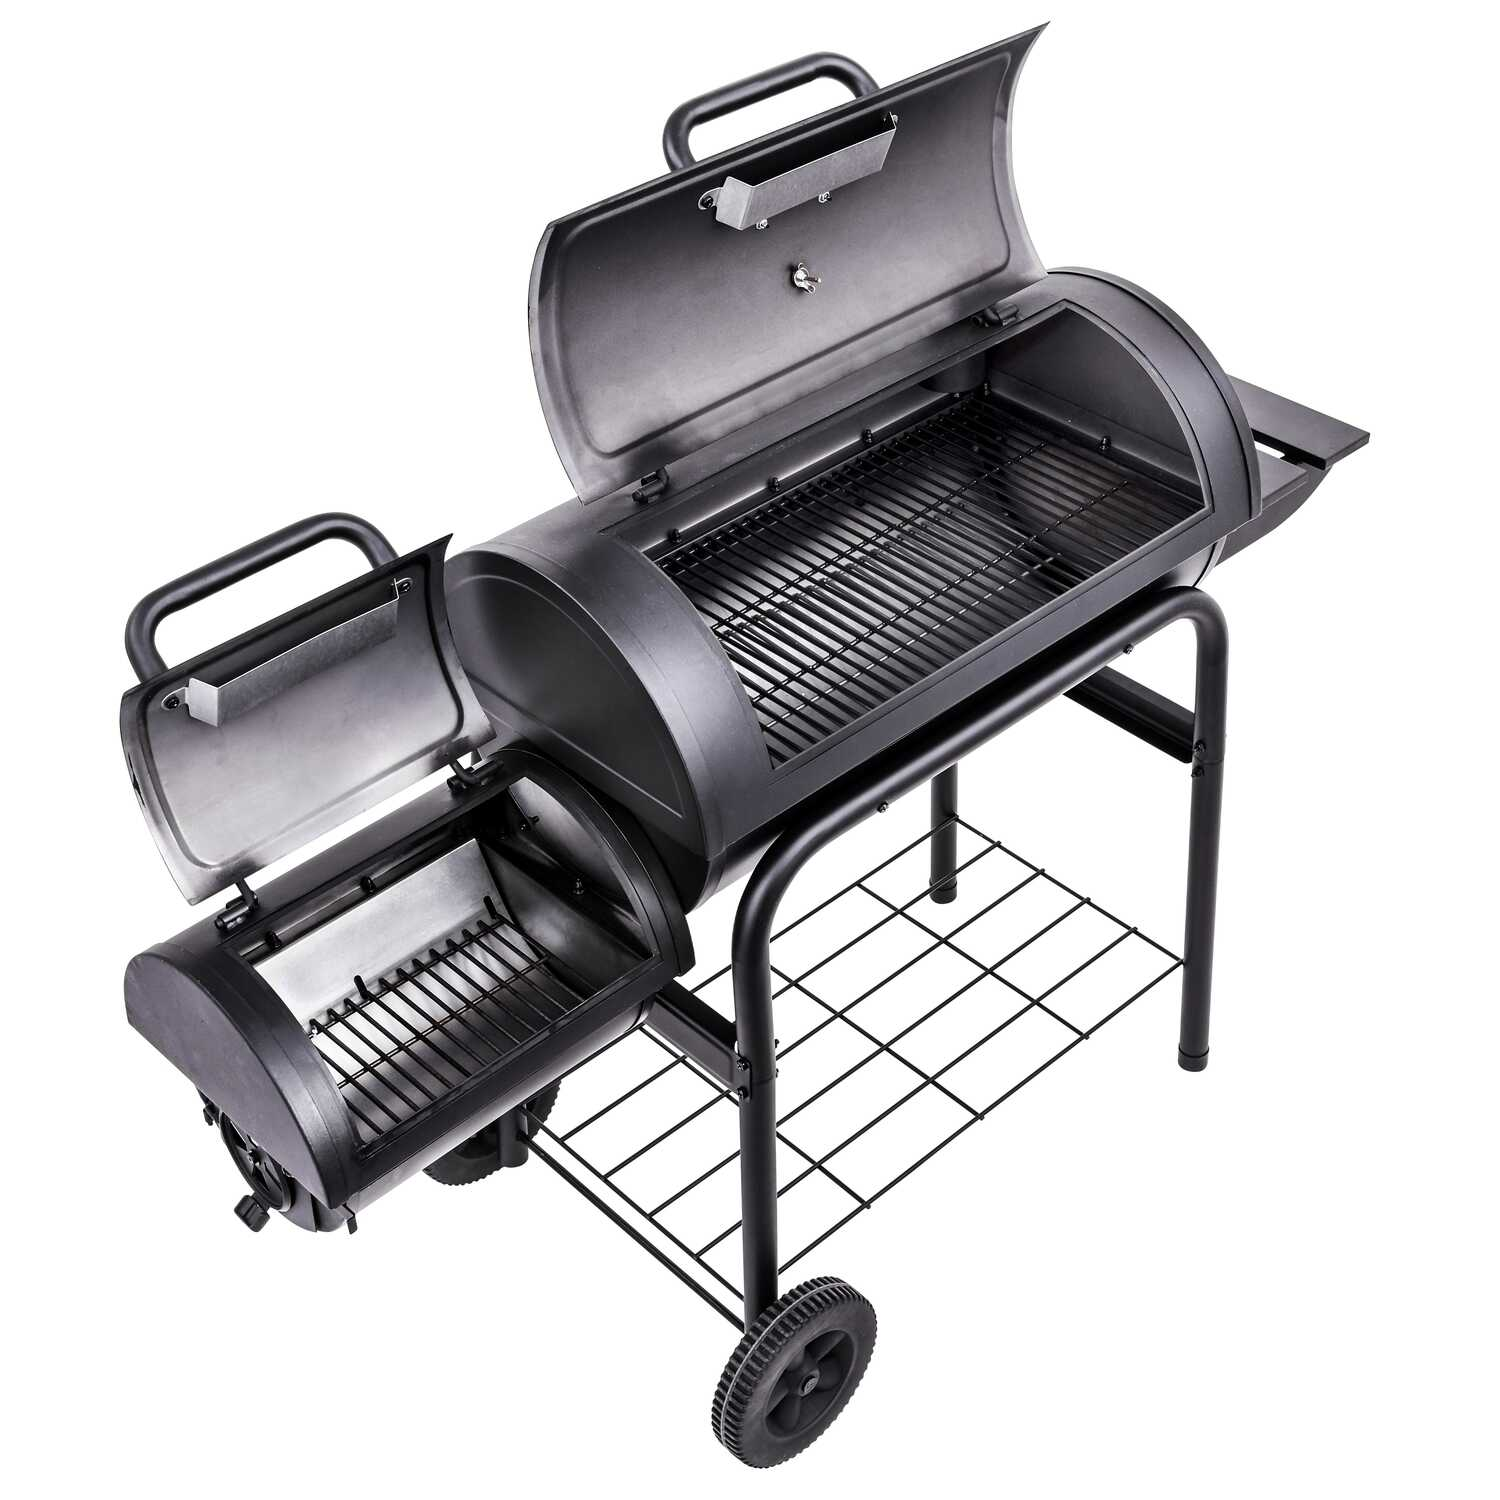 Char-Broil  American Gourmet  Charcoal  Smoker  Black